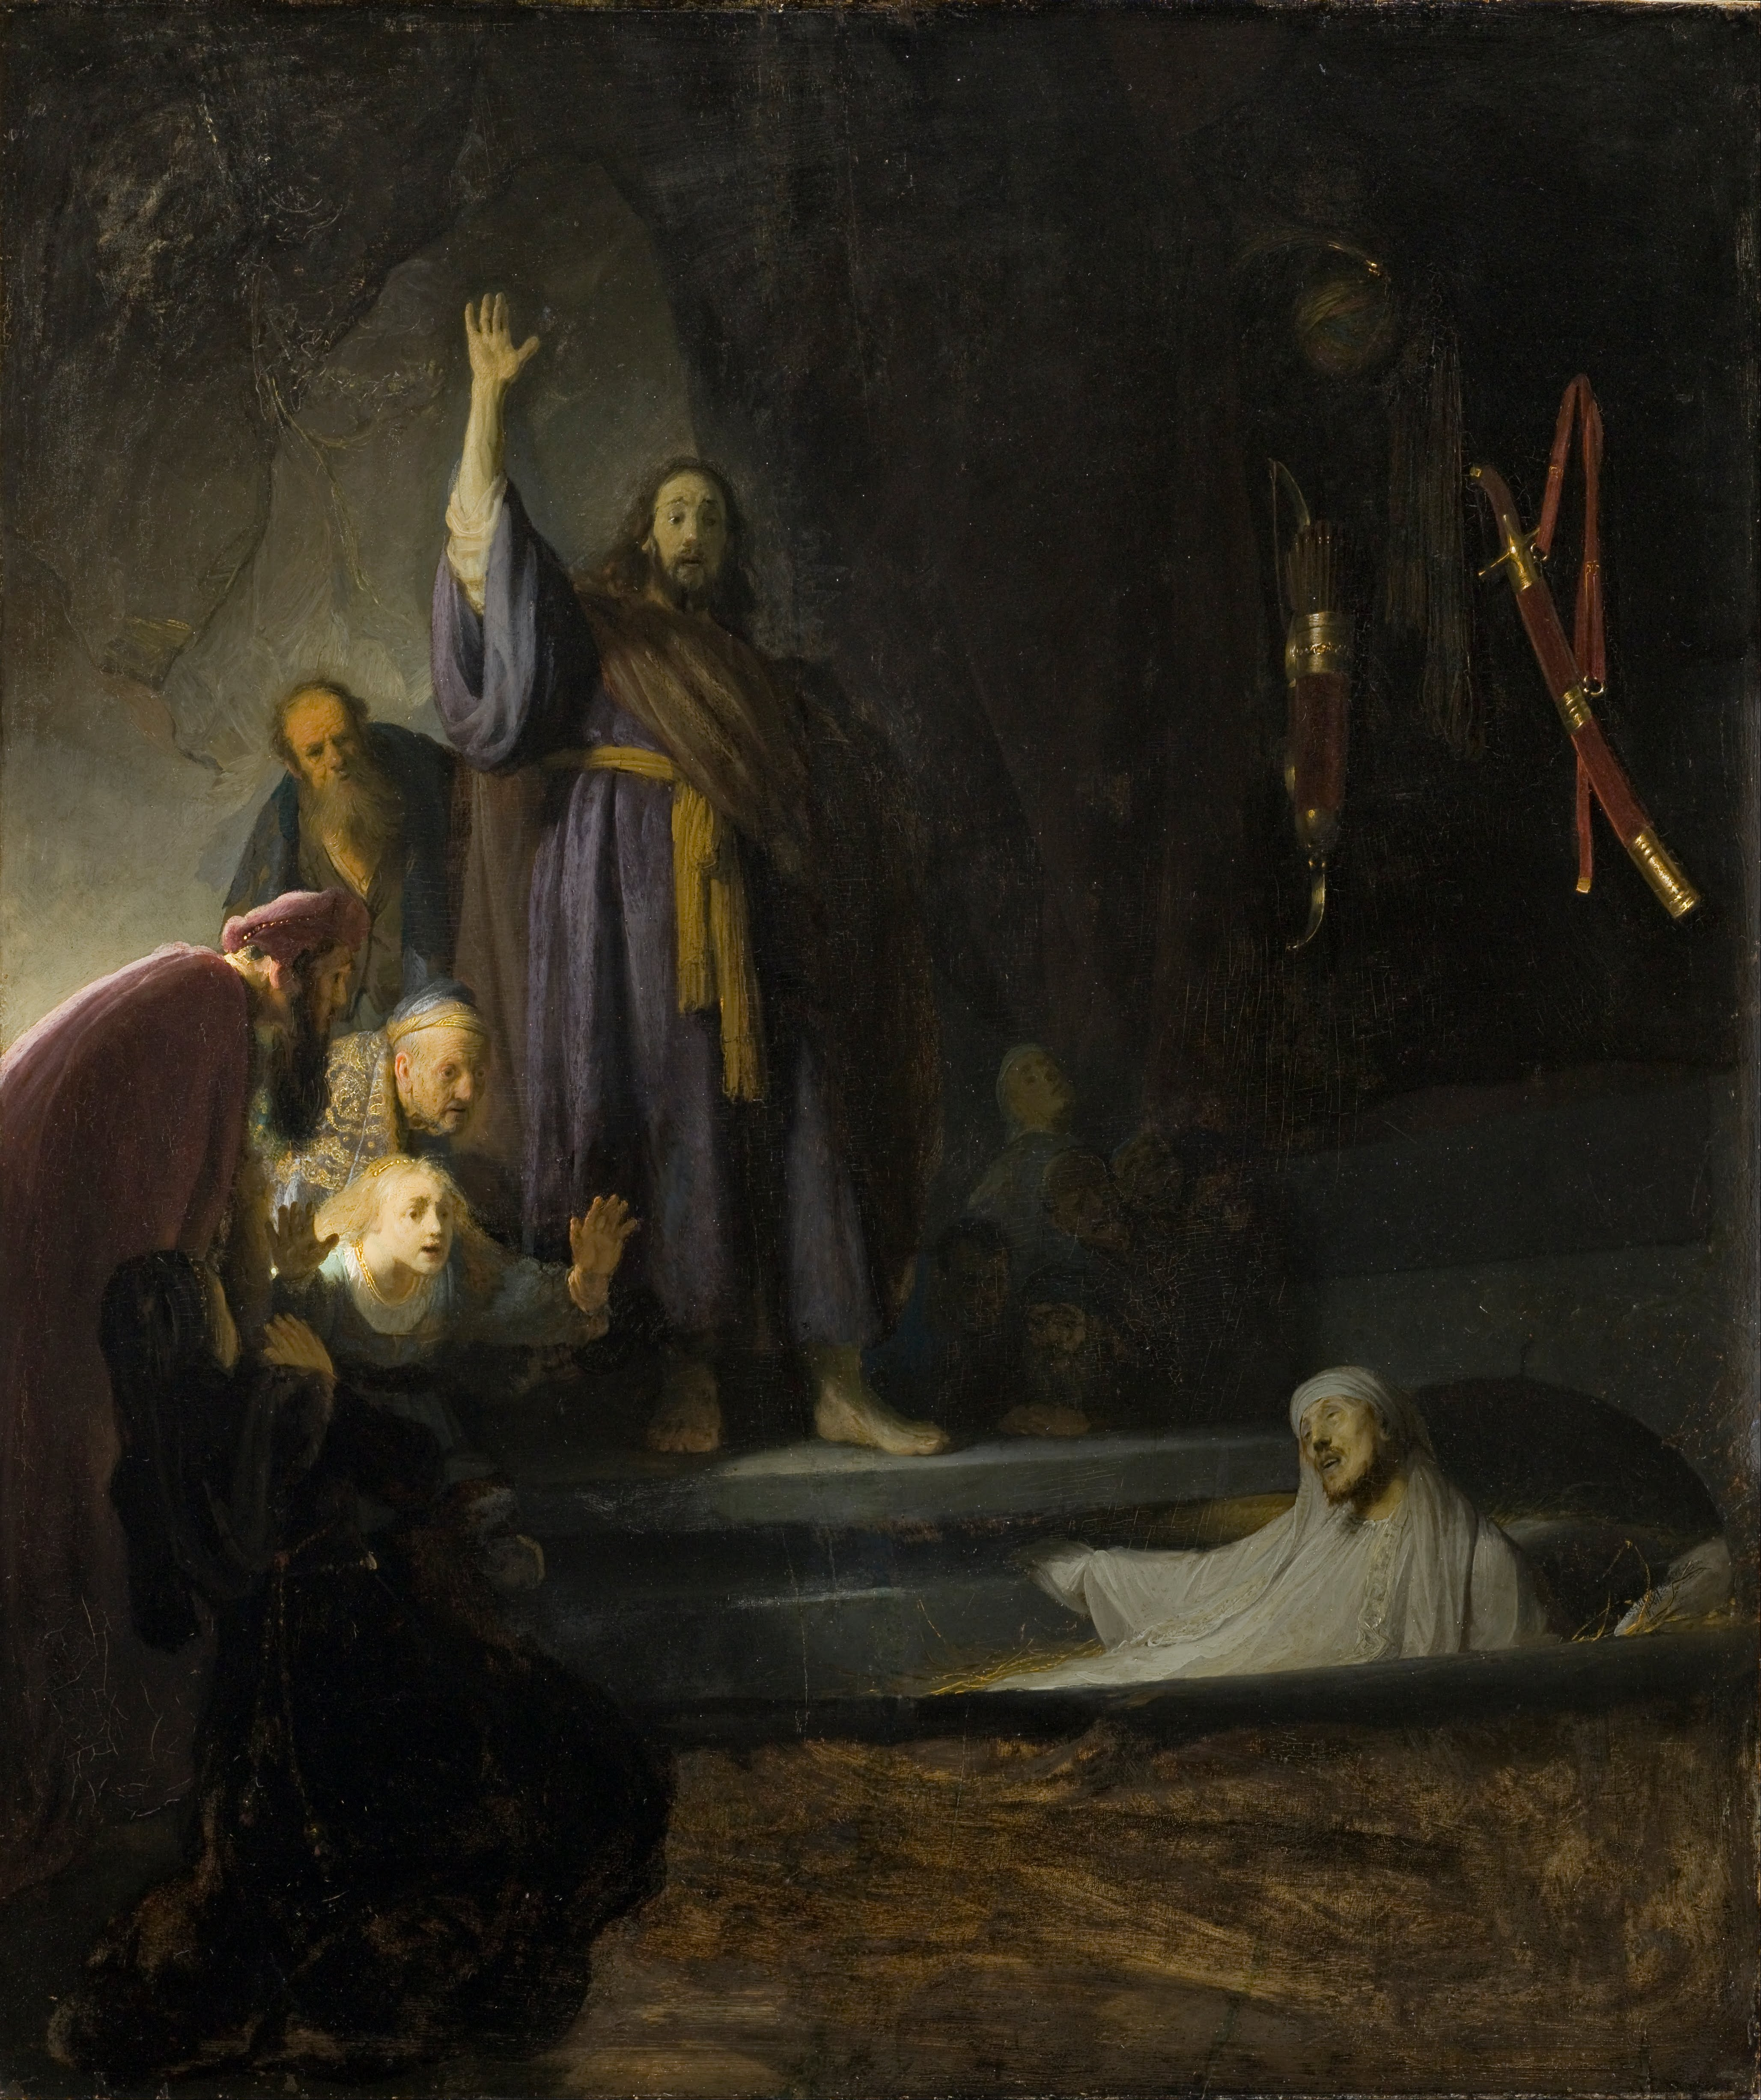 Jan 24th - John 11_1-16 - The_Raising_of_Lazarus by Rembrandt Harmensz. van Rijn